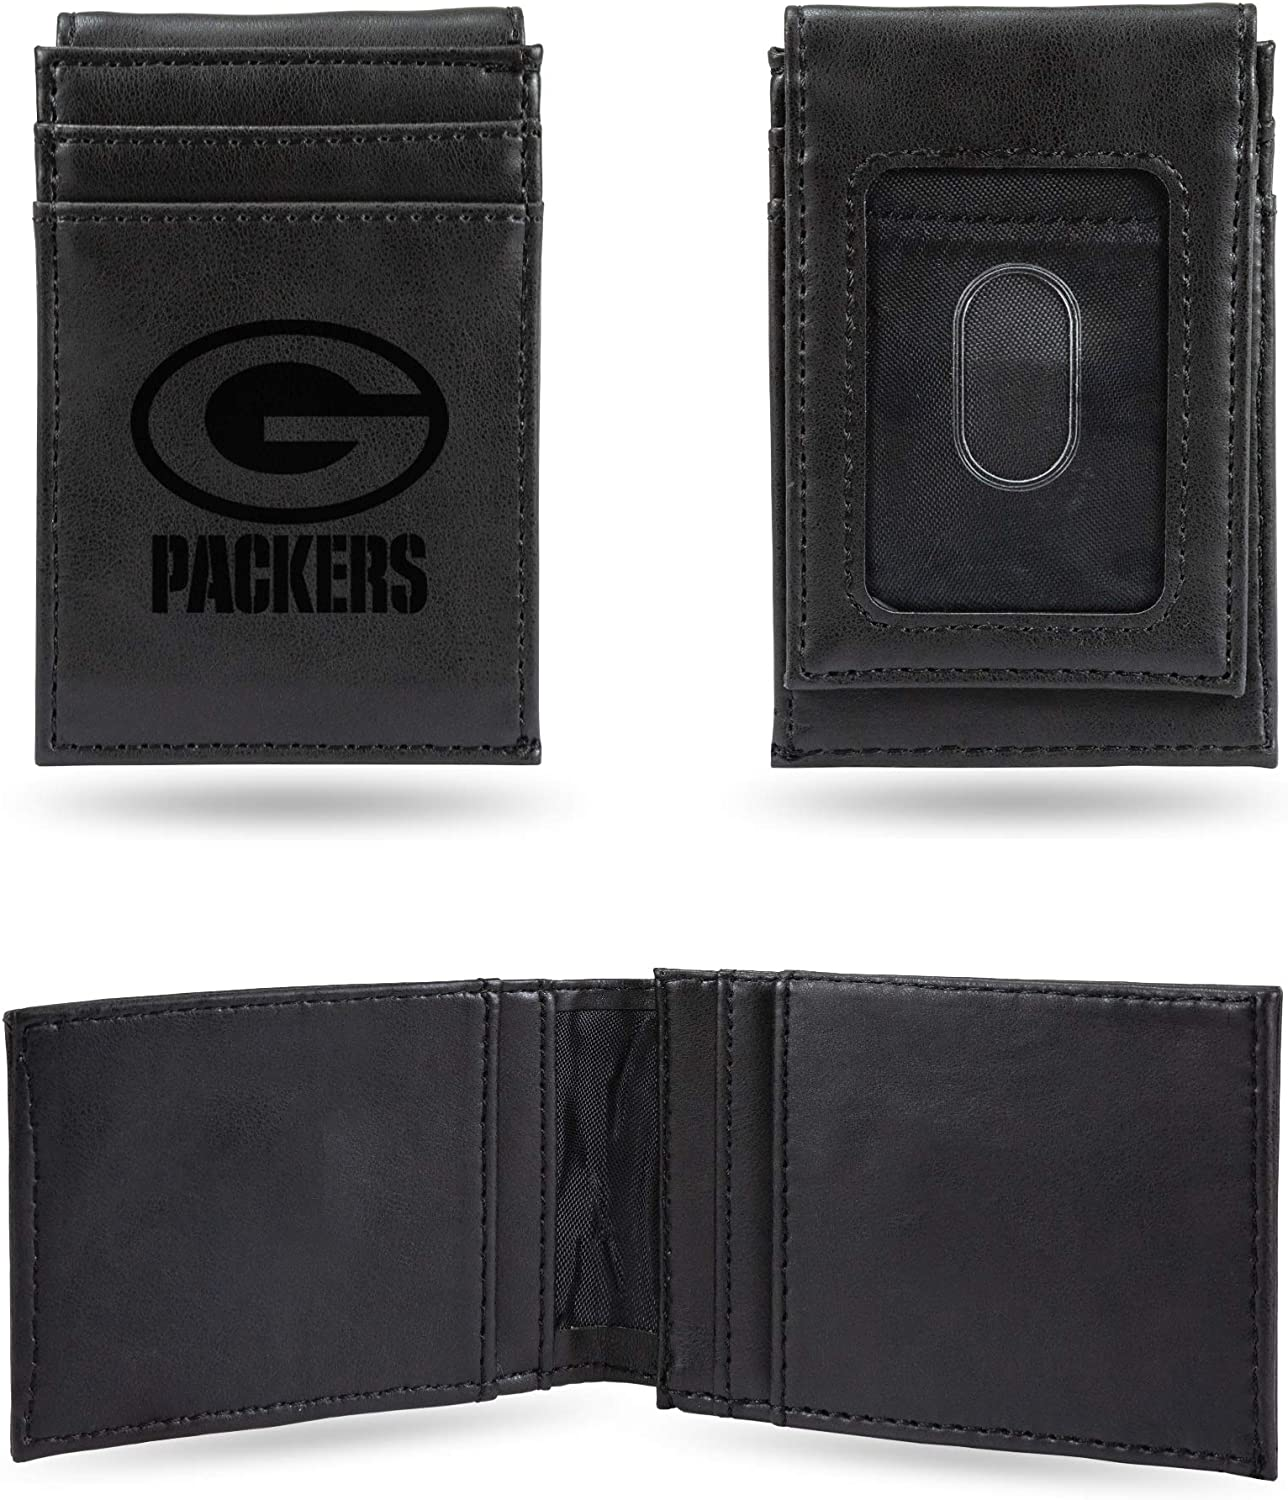 NFL Rico Industries Laser Engraved Front Pocket Wallet, Green Bay Packers